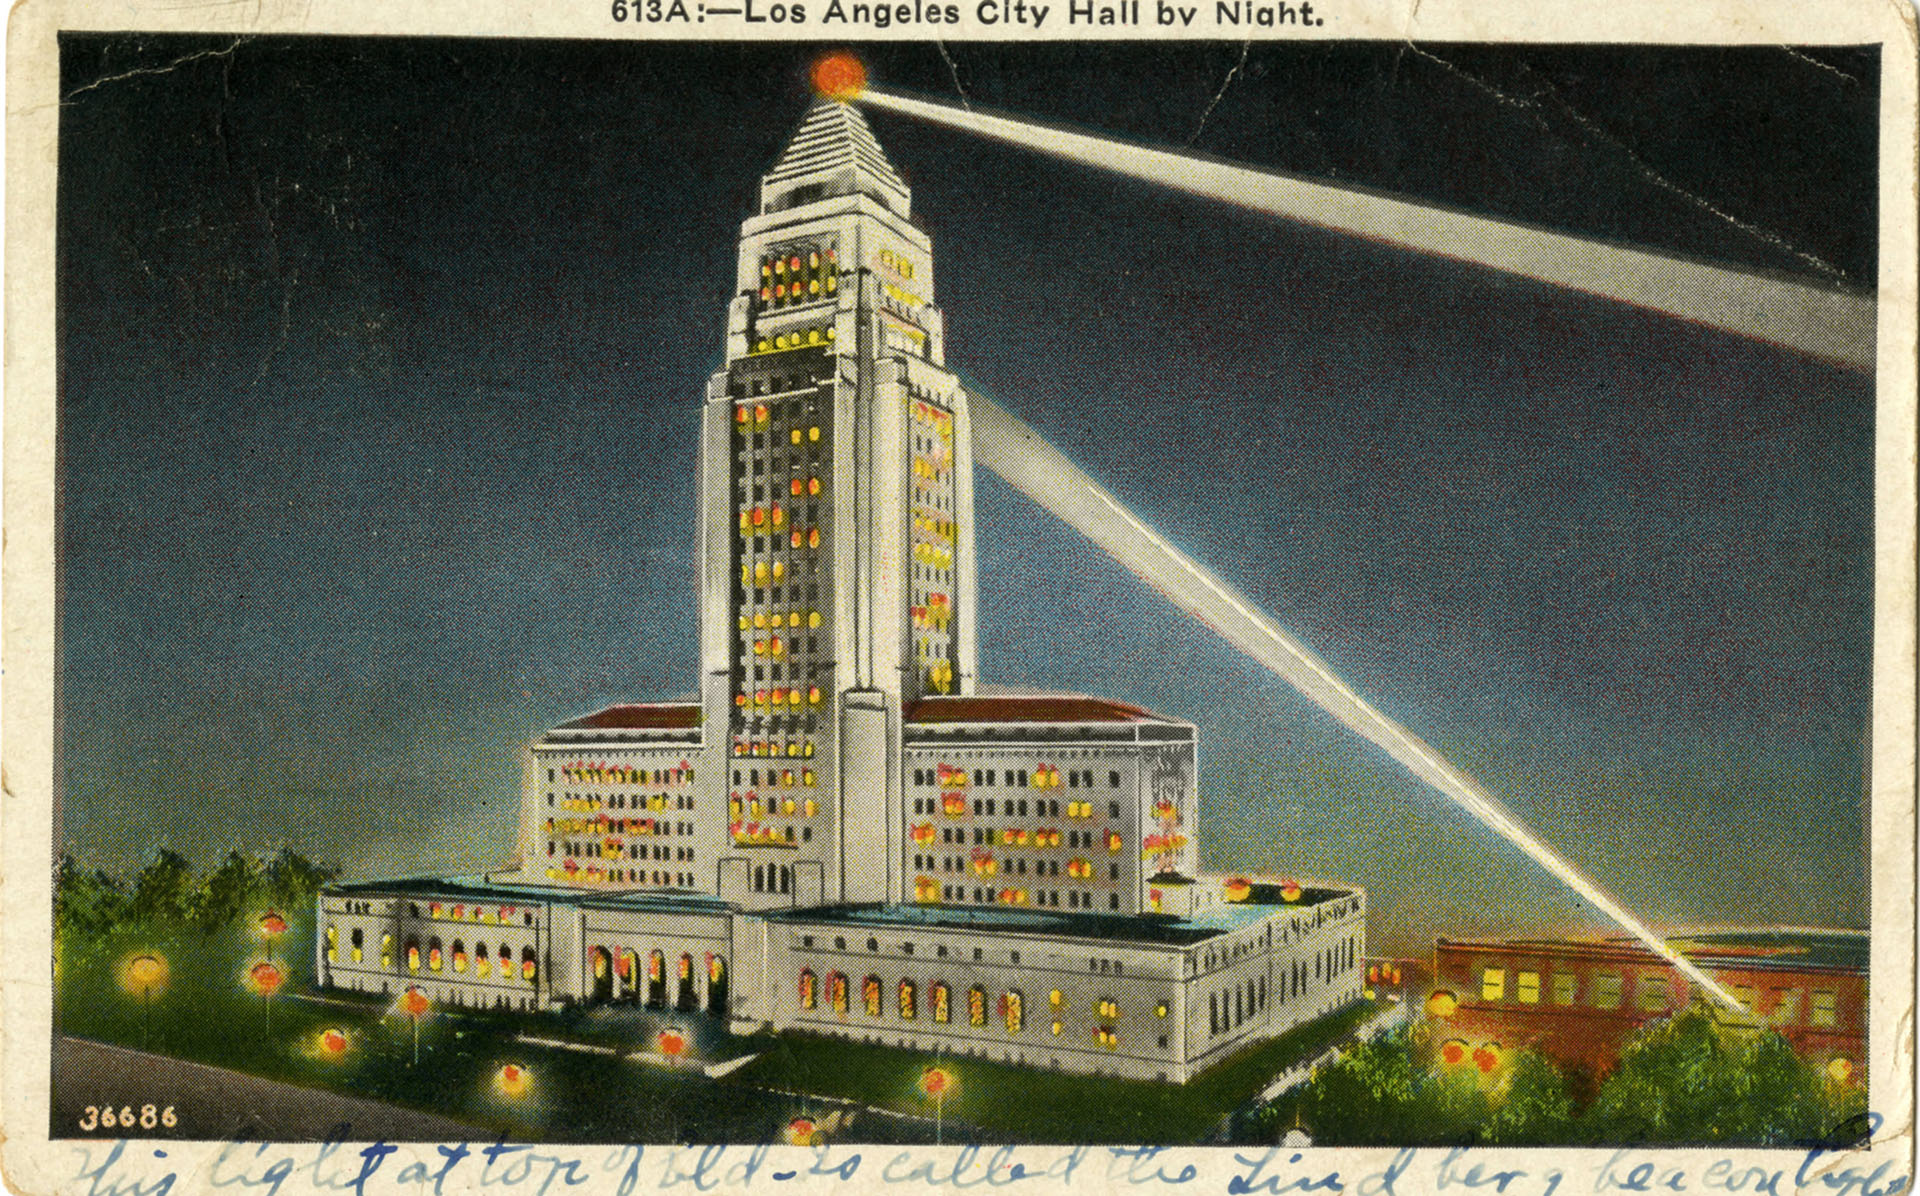 Postcard of Los Angeles City Hall at night, 1935